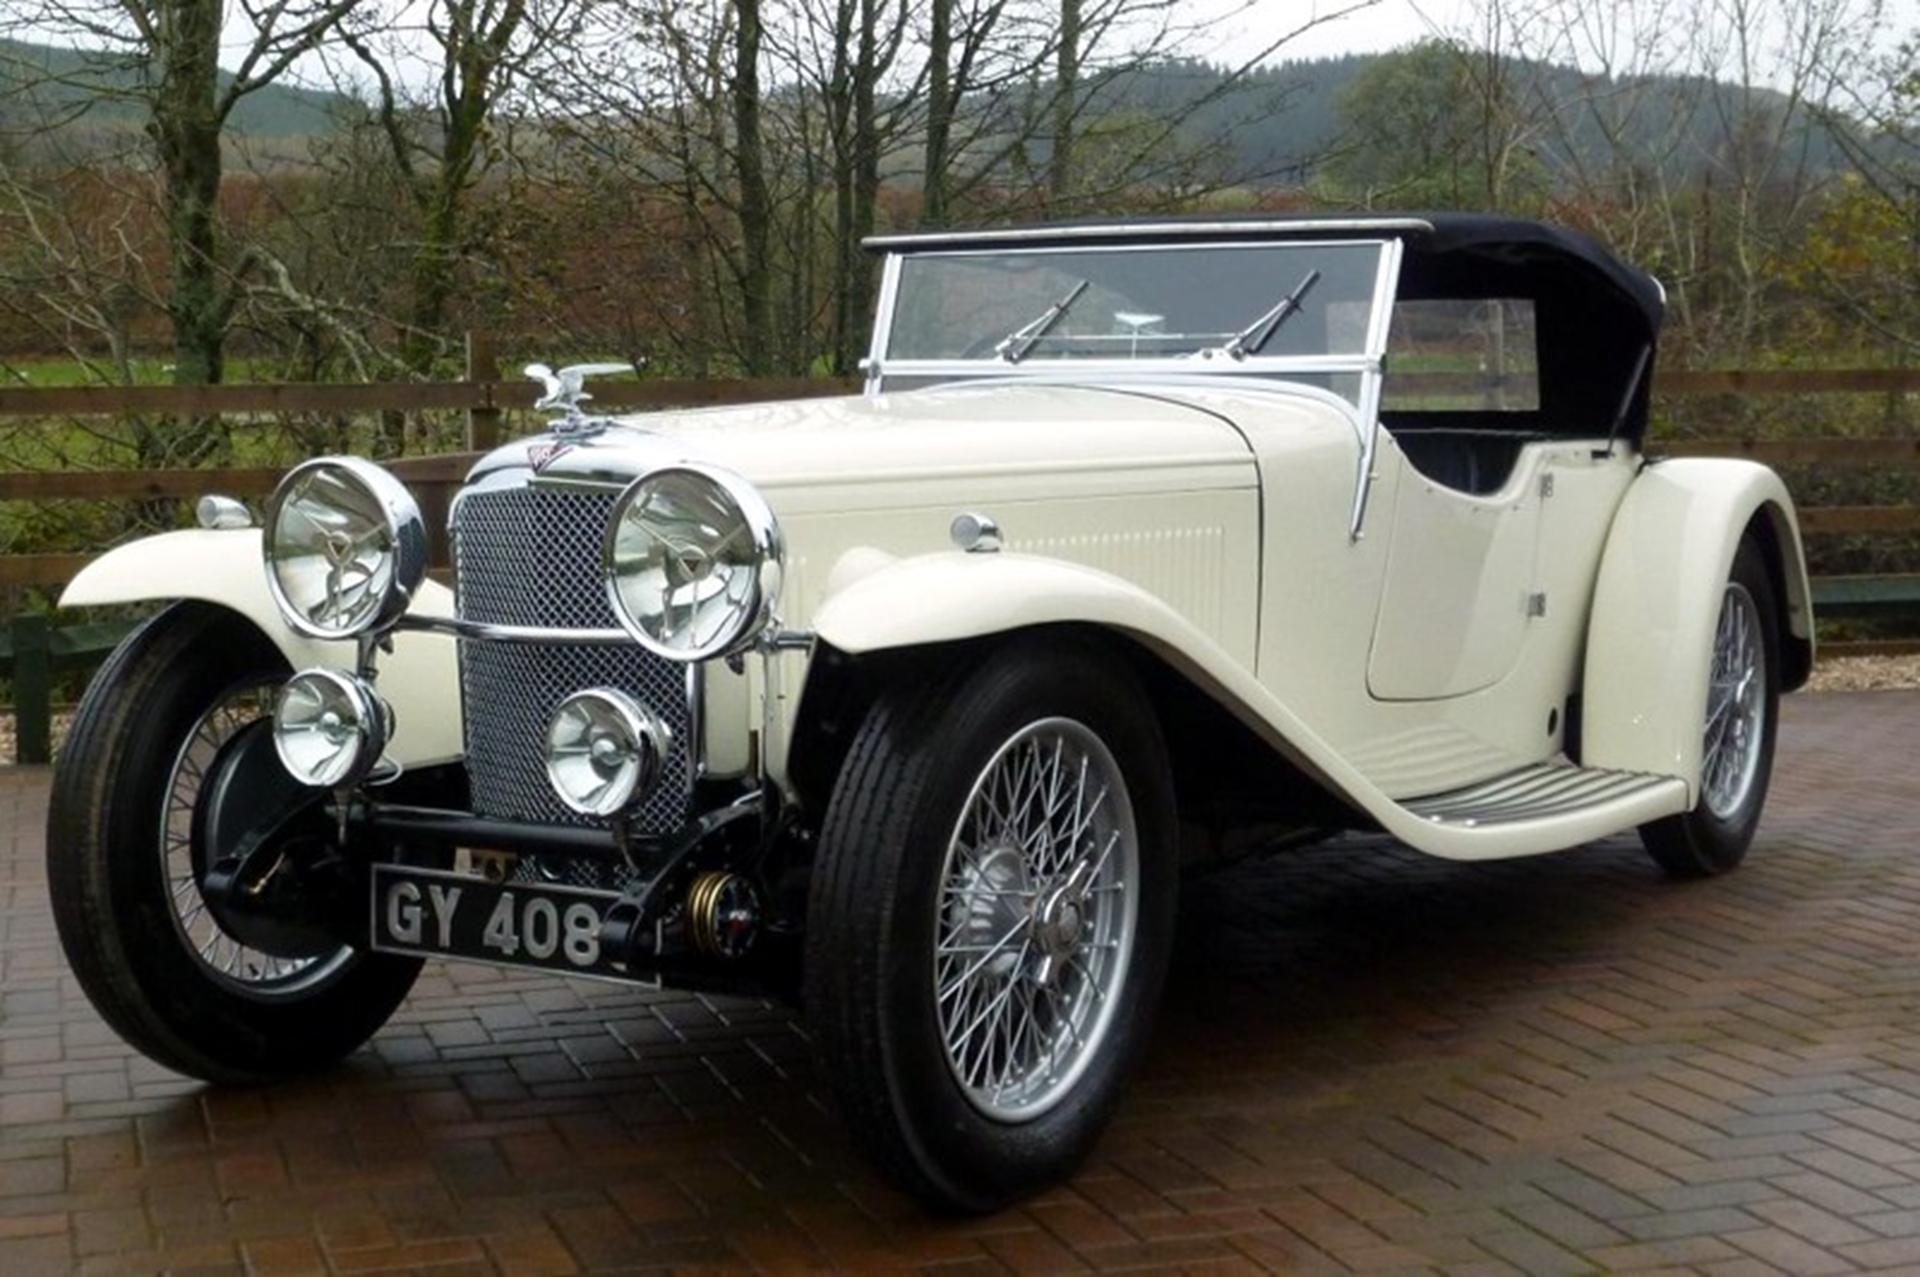 1932 Alvis Speed 20 SA two door Sports Tourer